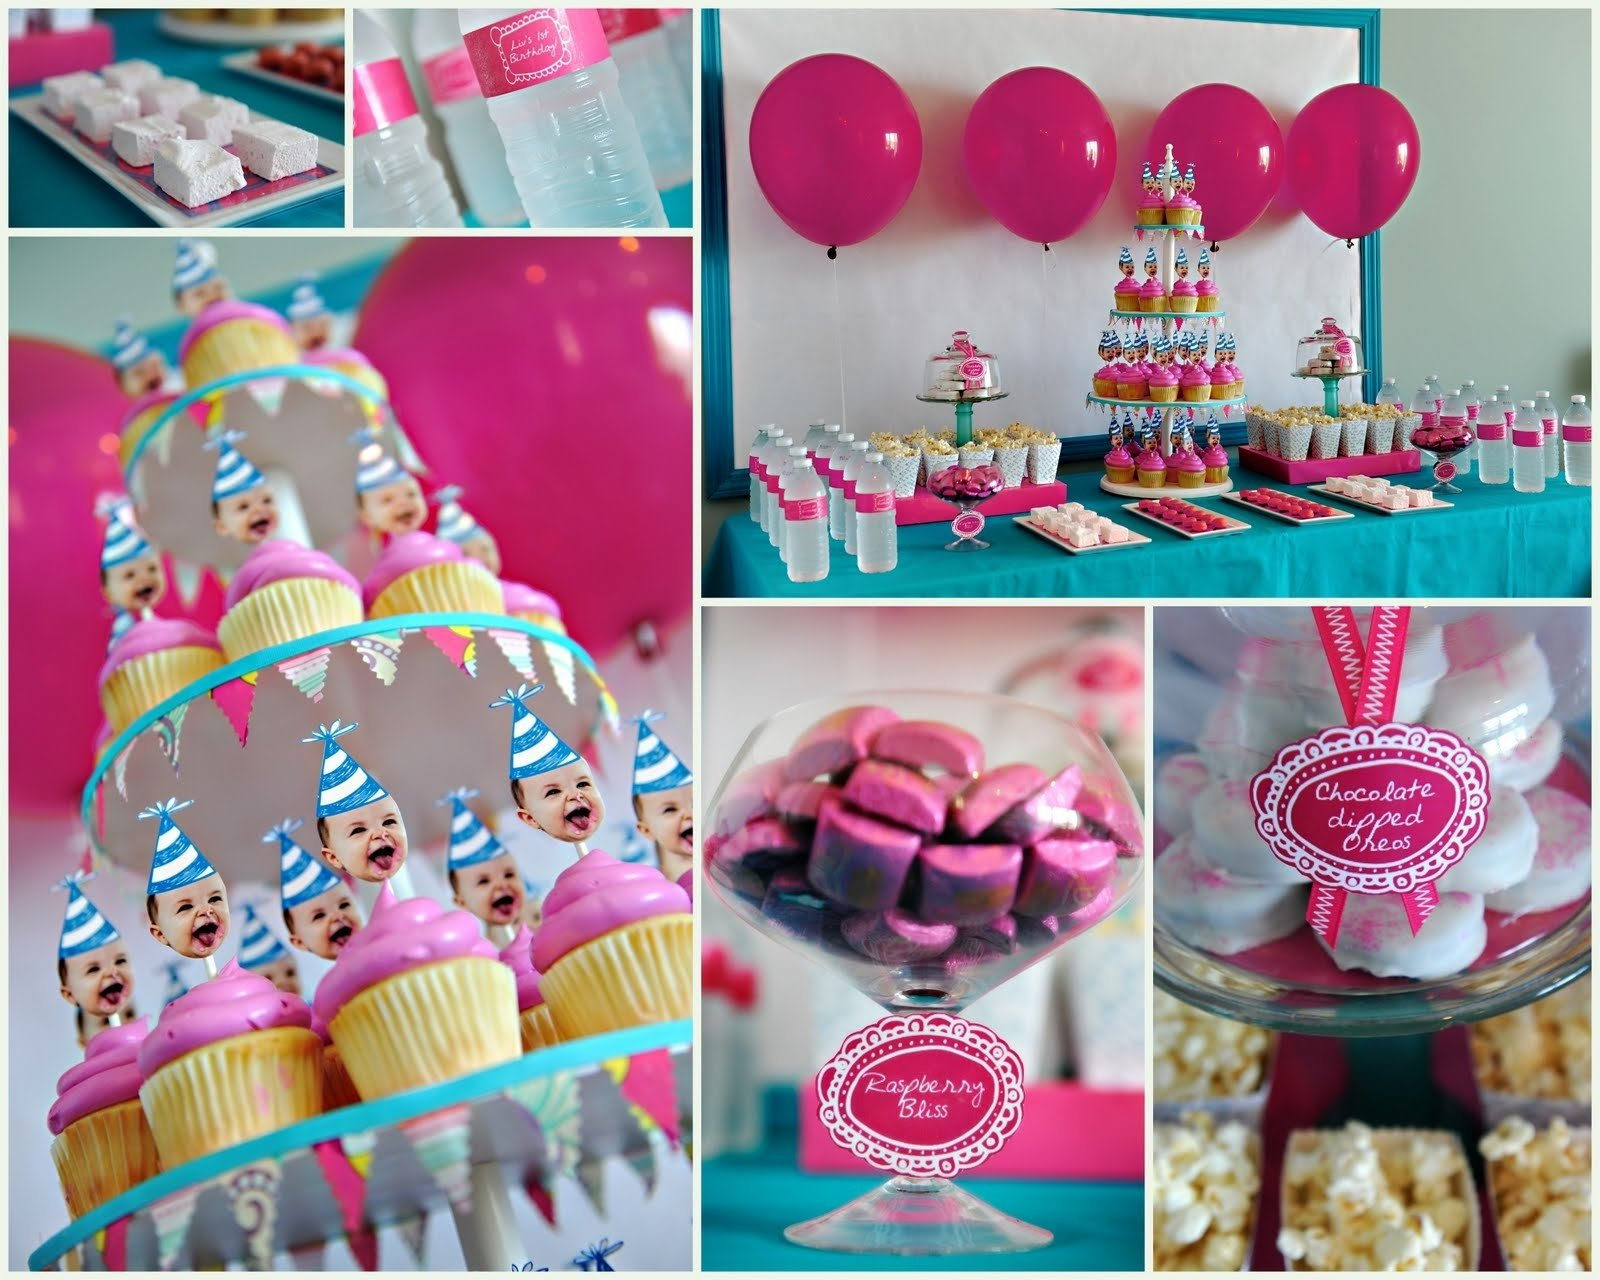 10 Lovable Birthday Ideas For A 1 Year Old themes birthday 1 year old birthday party activity ideas with 1